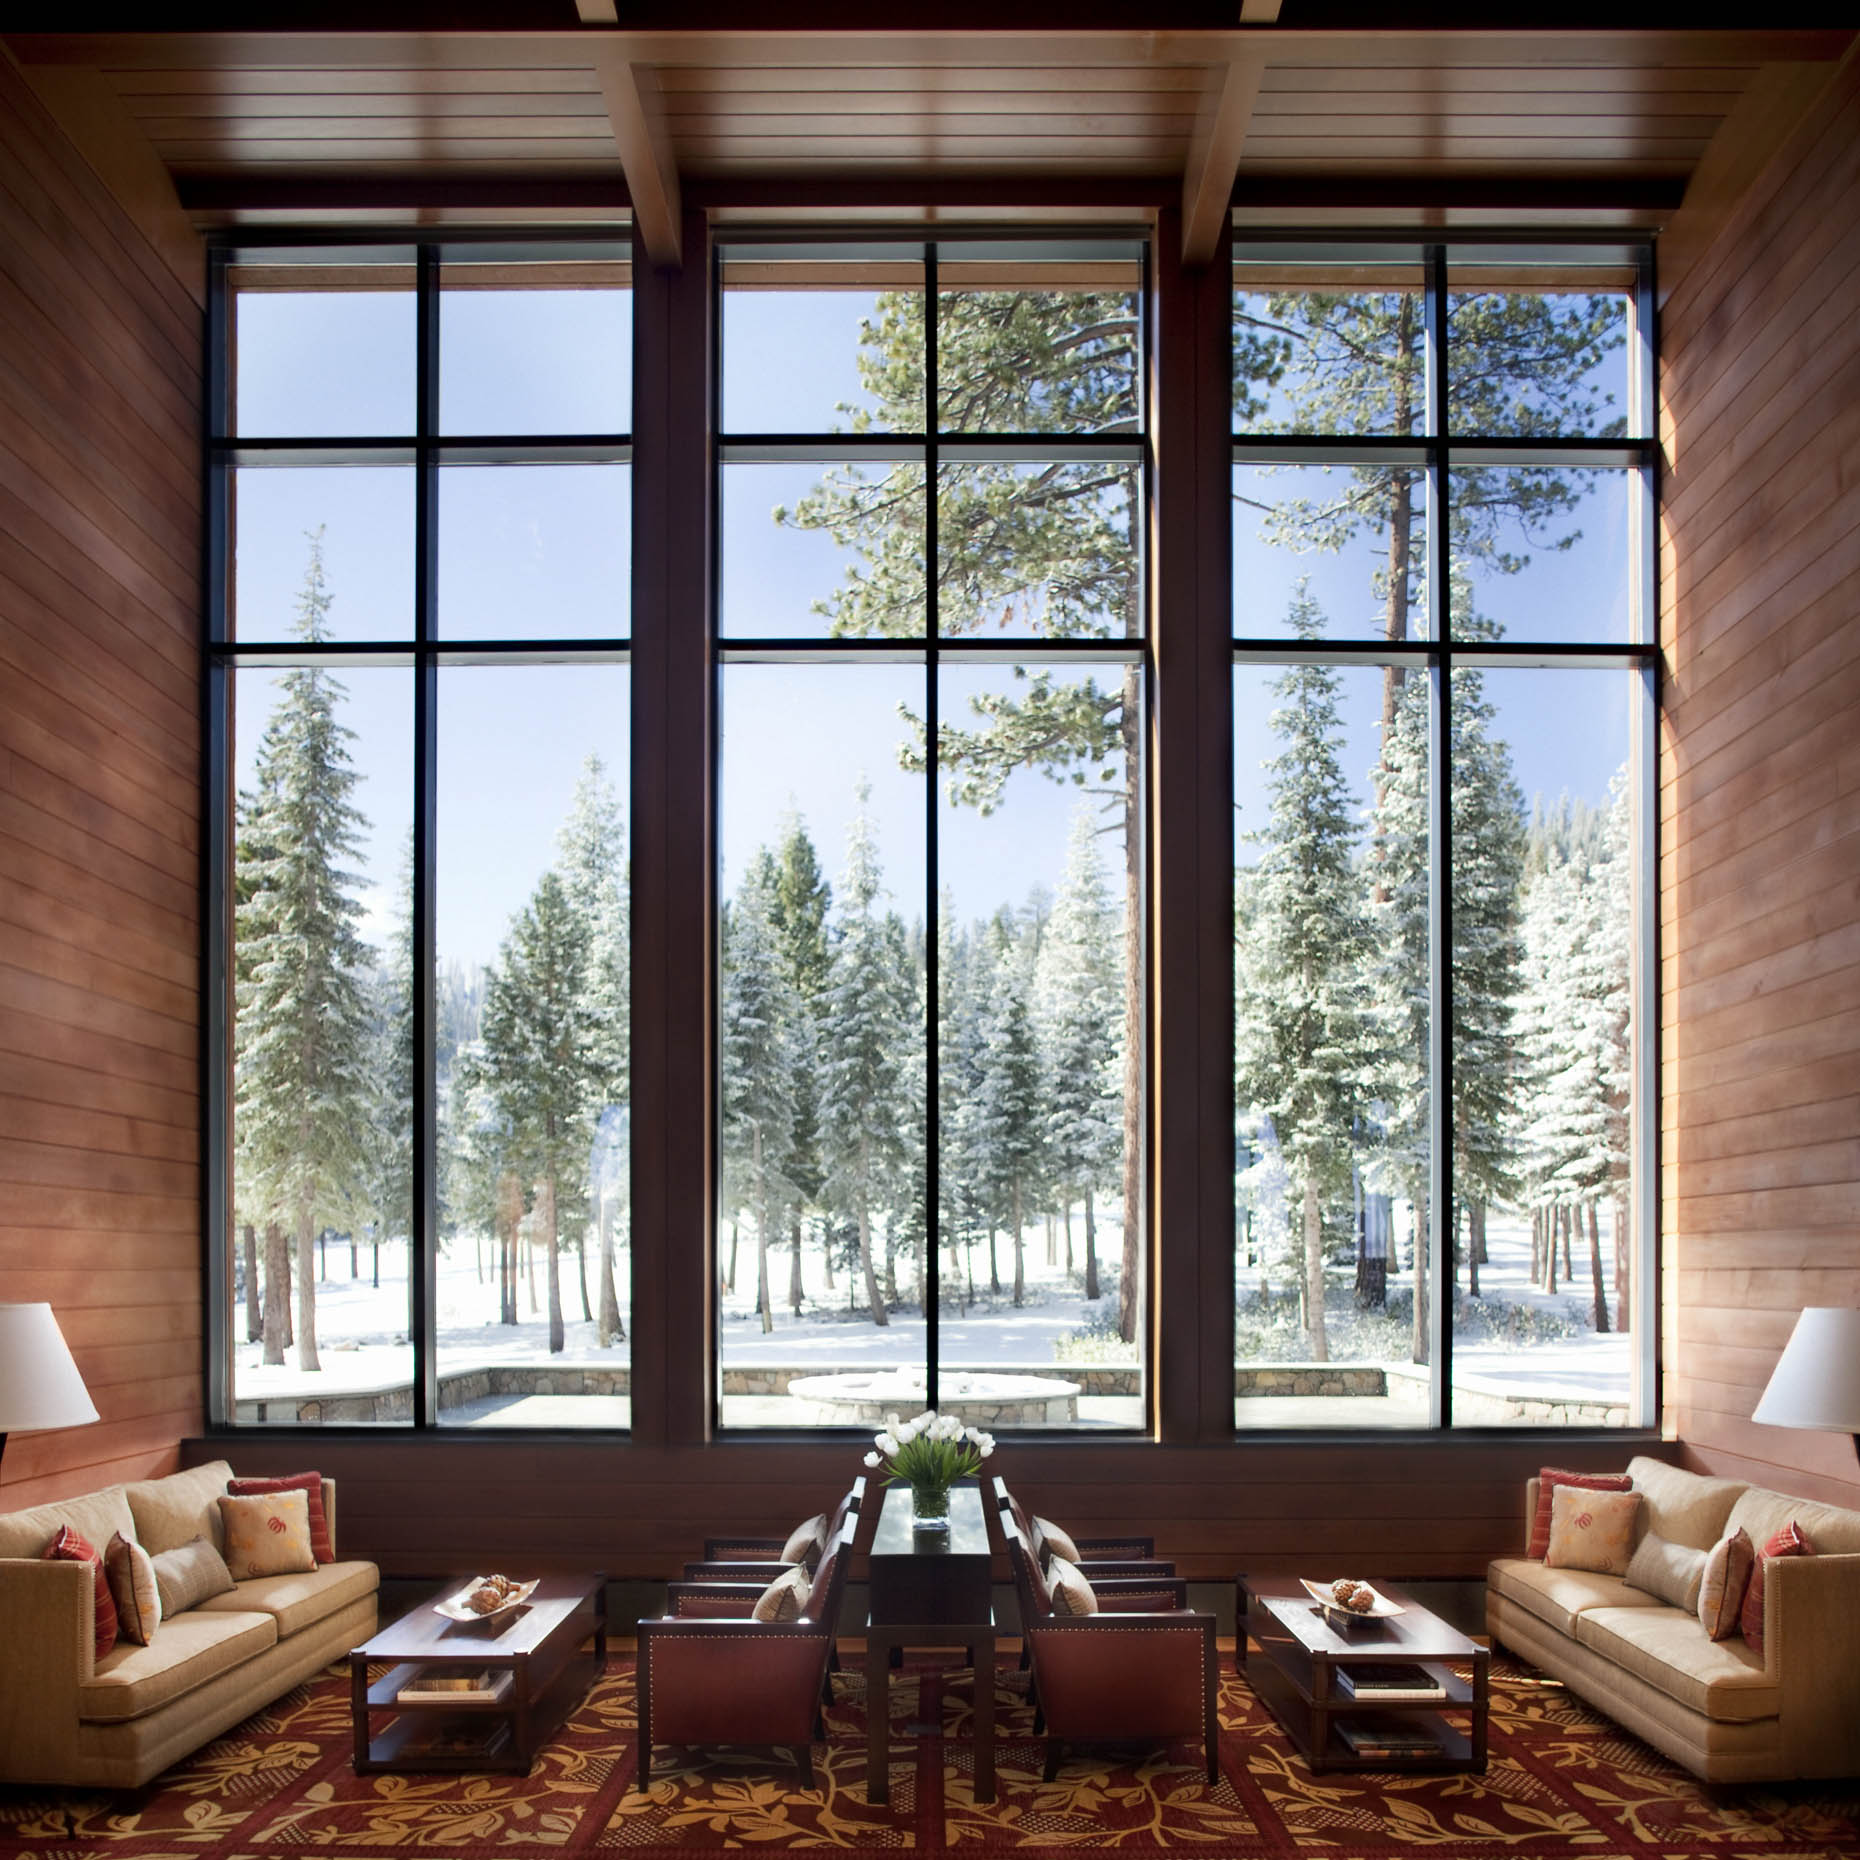 The Ritz-Carlton, Lake Tahoe lobby lounge | U.S.A. |